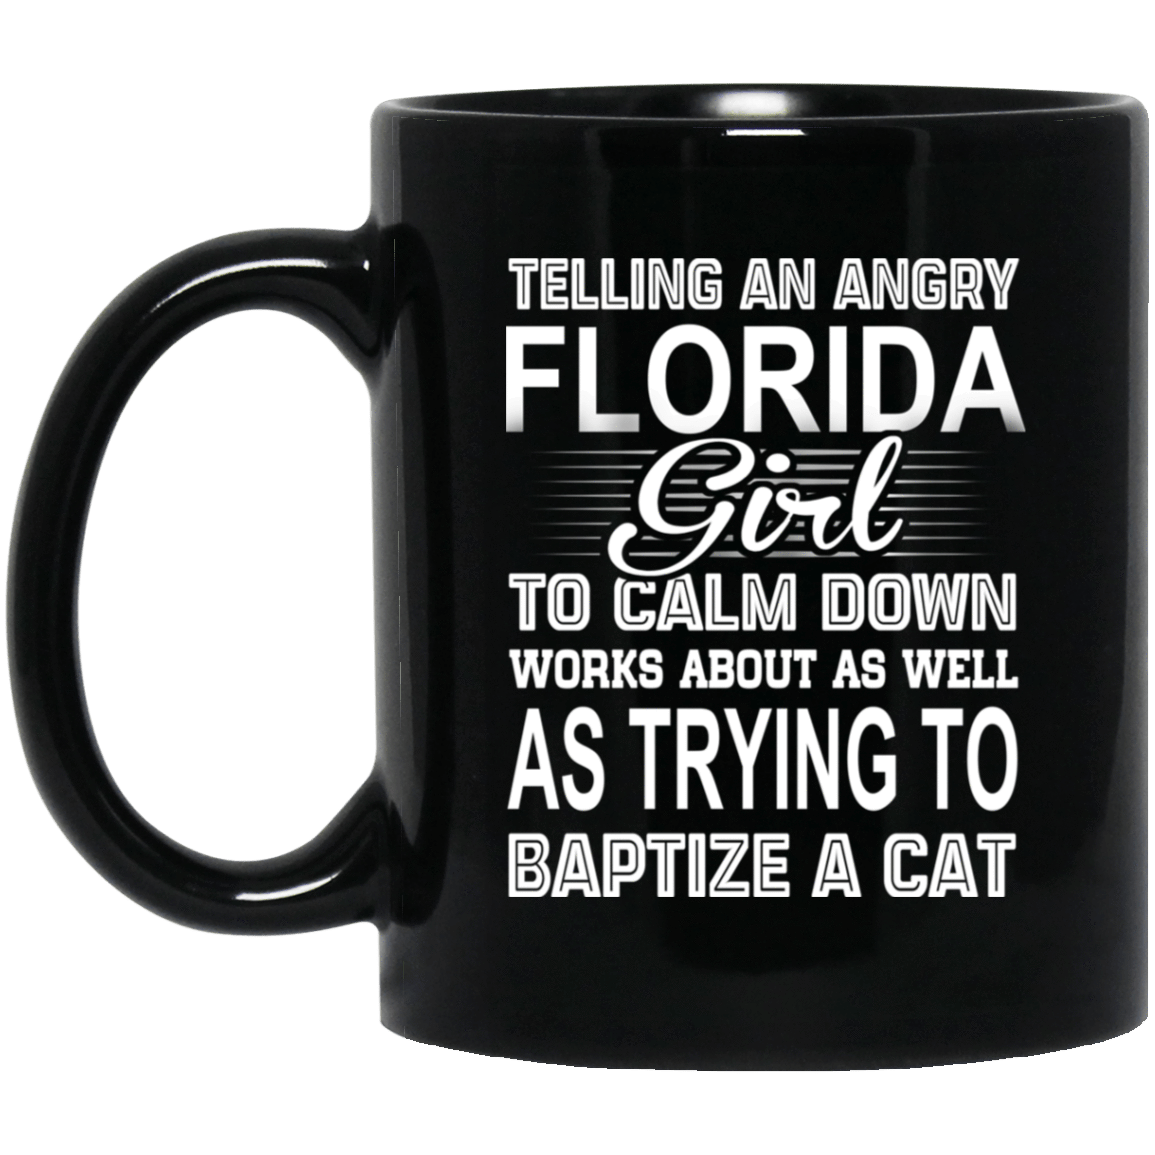 Telling An Angry Florida Girl To Calm Down Works About As Well As Trying To Baptize A Cat Mug 1065-10181-76151653-49307 - Tee Ript